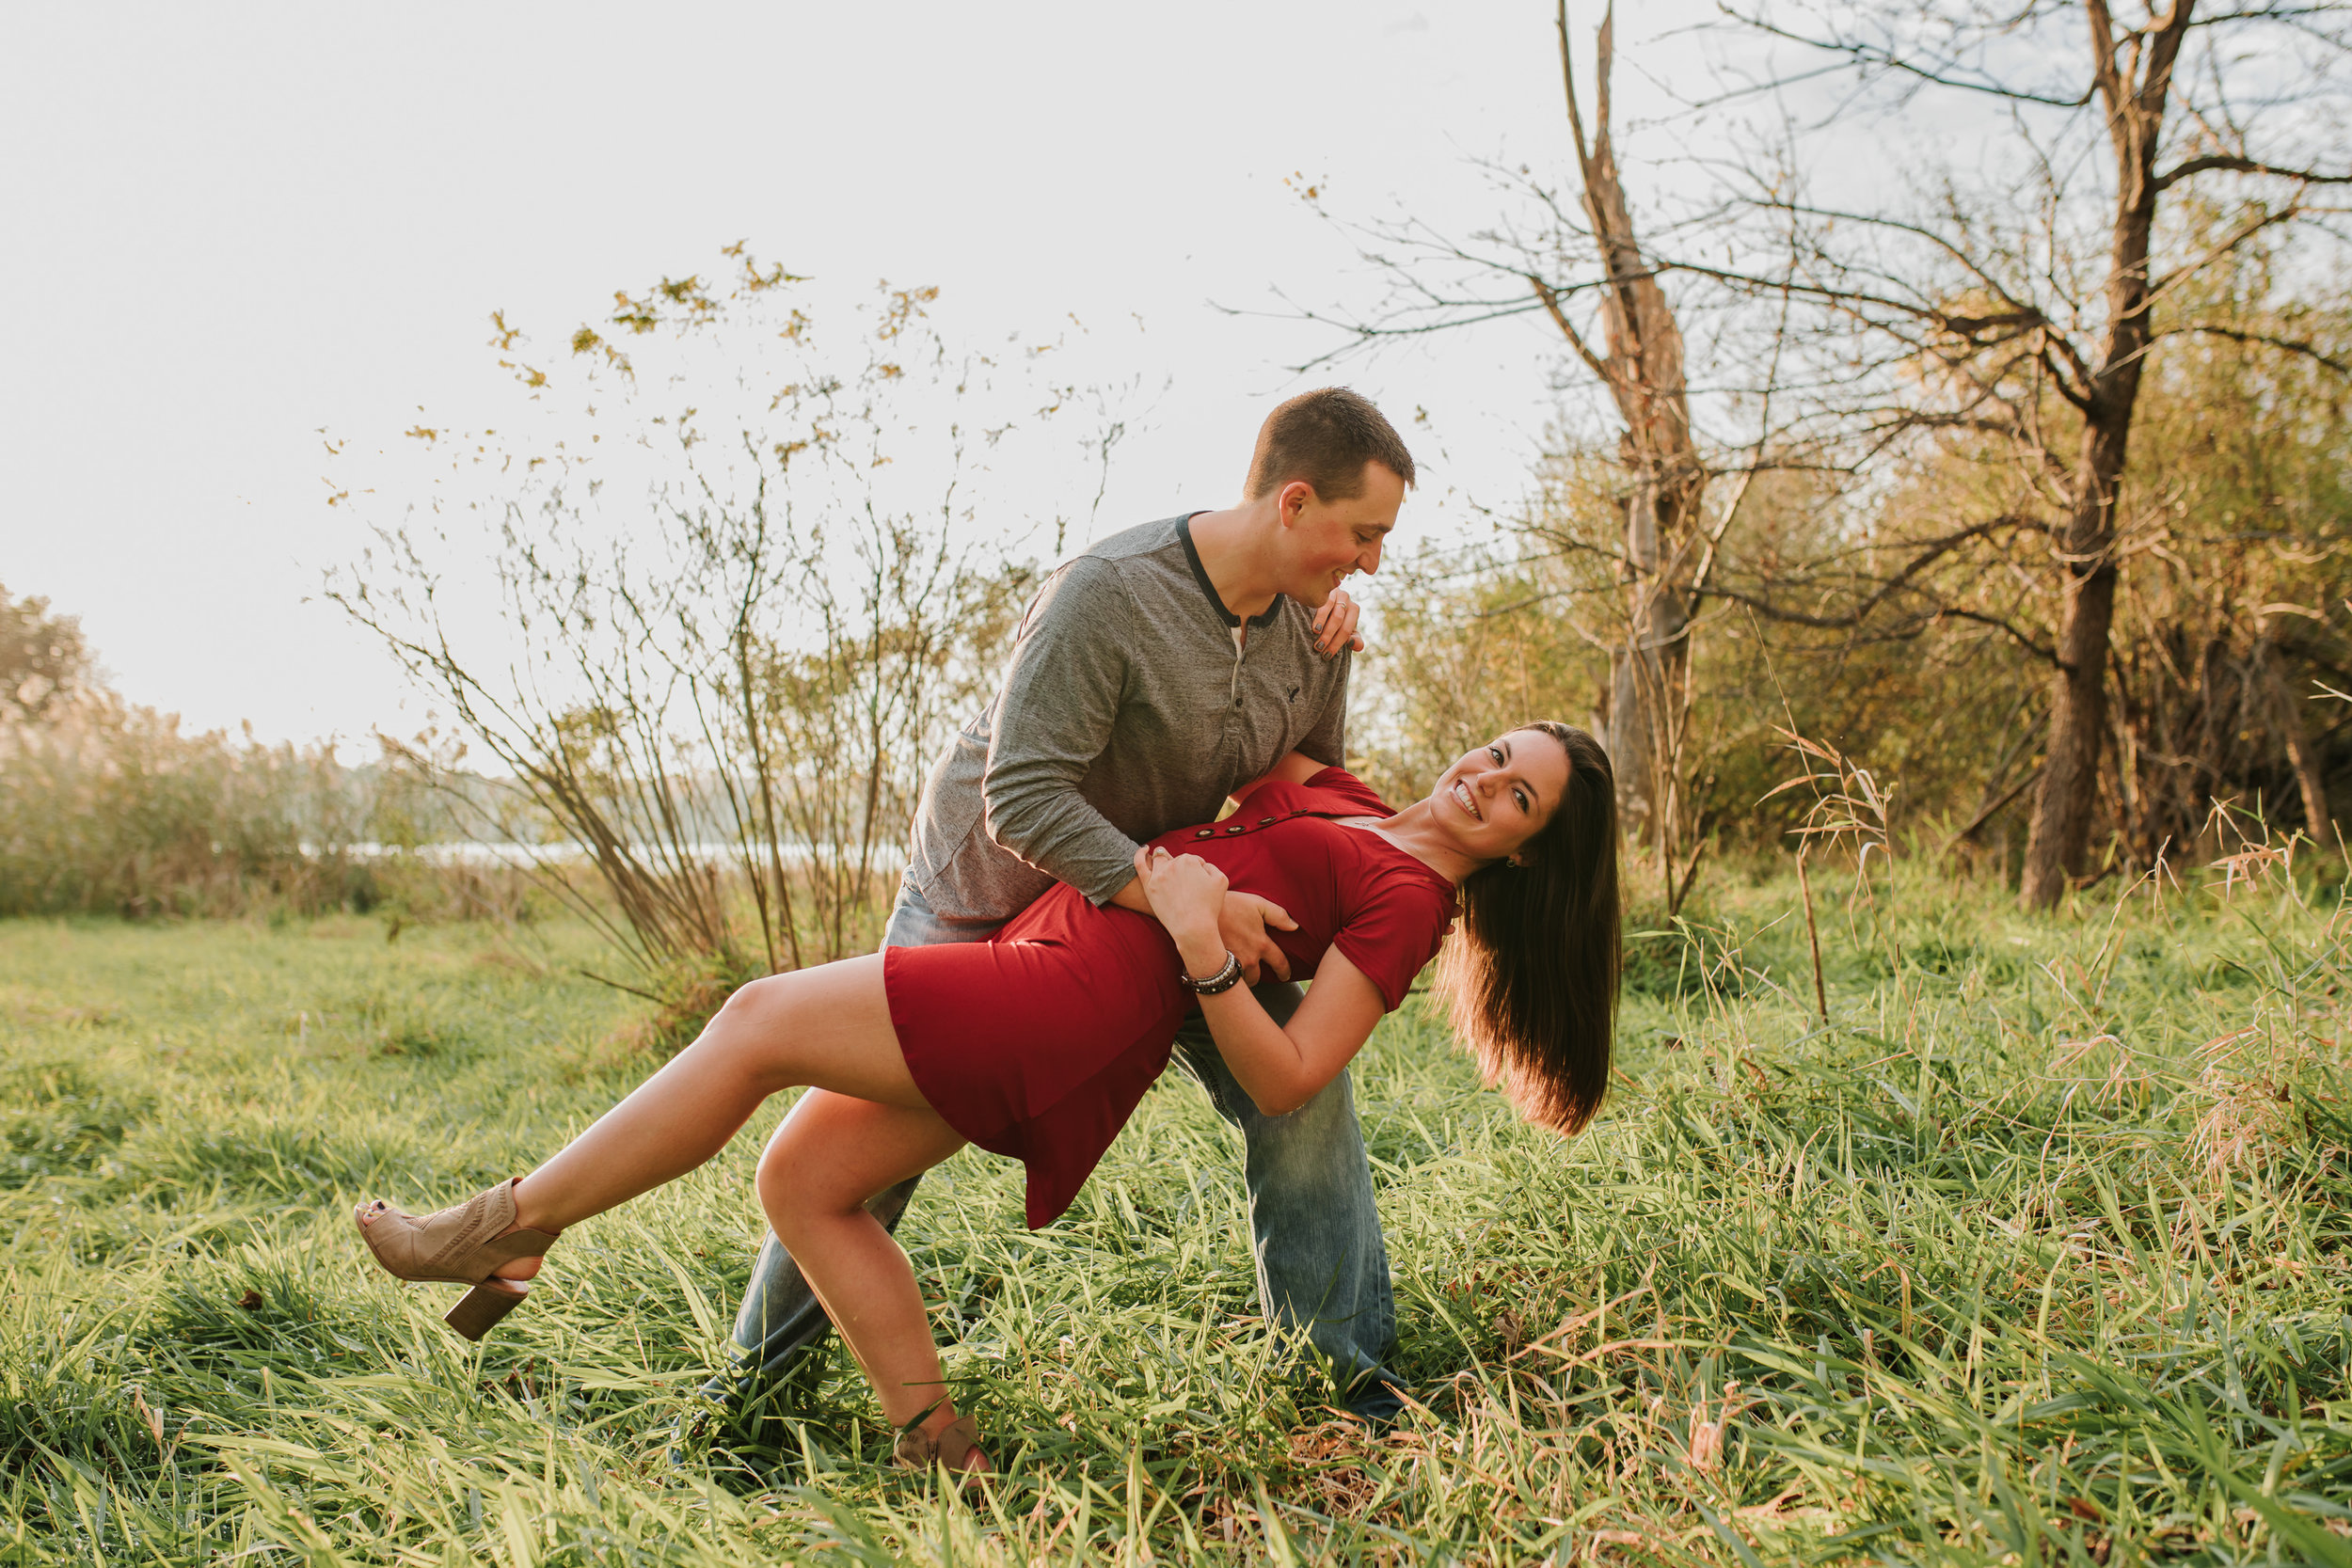 Hannah & Brett - Engaged - Nathaniel Jensen Photography - Omaha Nebraska Wedding Photograper - Omaha Nebraska Engagement Session - Chalco Hills Engagement Session-128.jpg